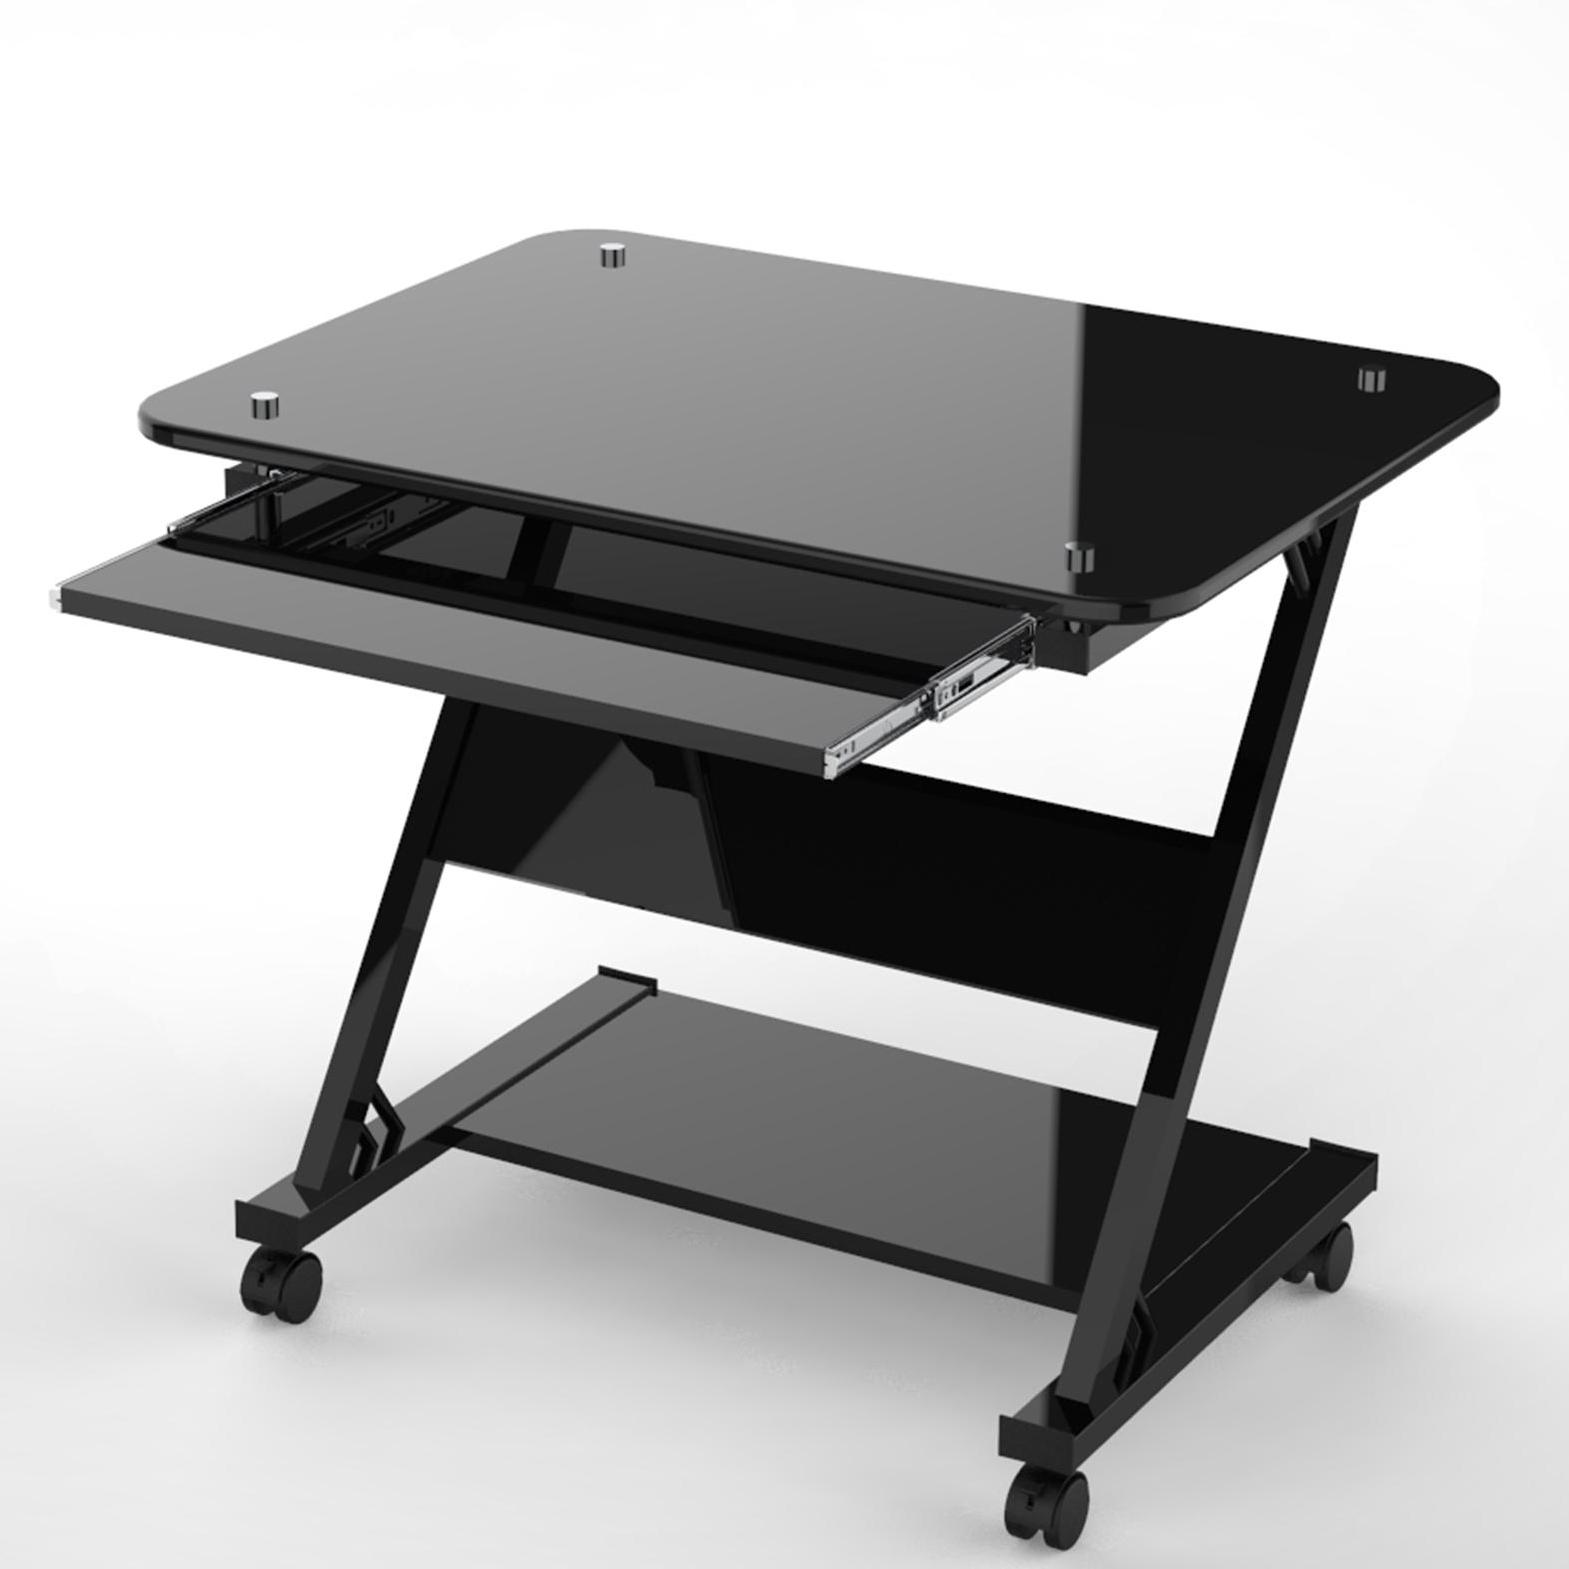 Computer Table, Desktop Table, Pc Table, Office Table, Home Table, Study Table, Bed room Table